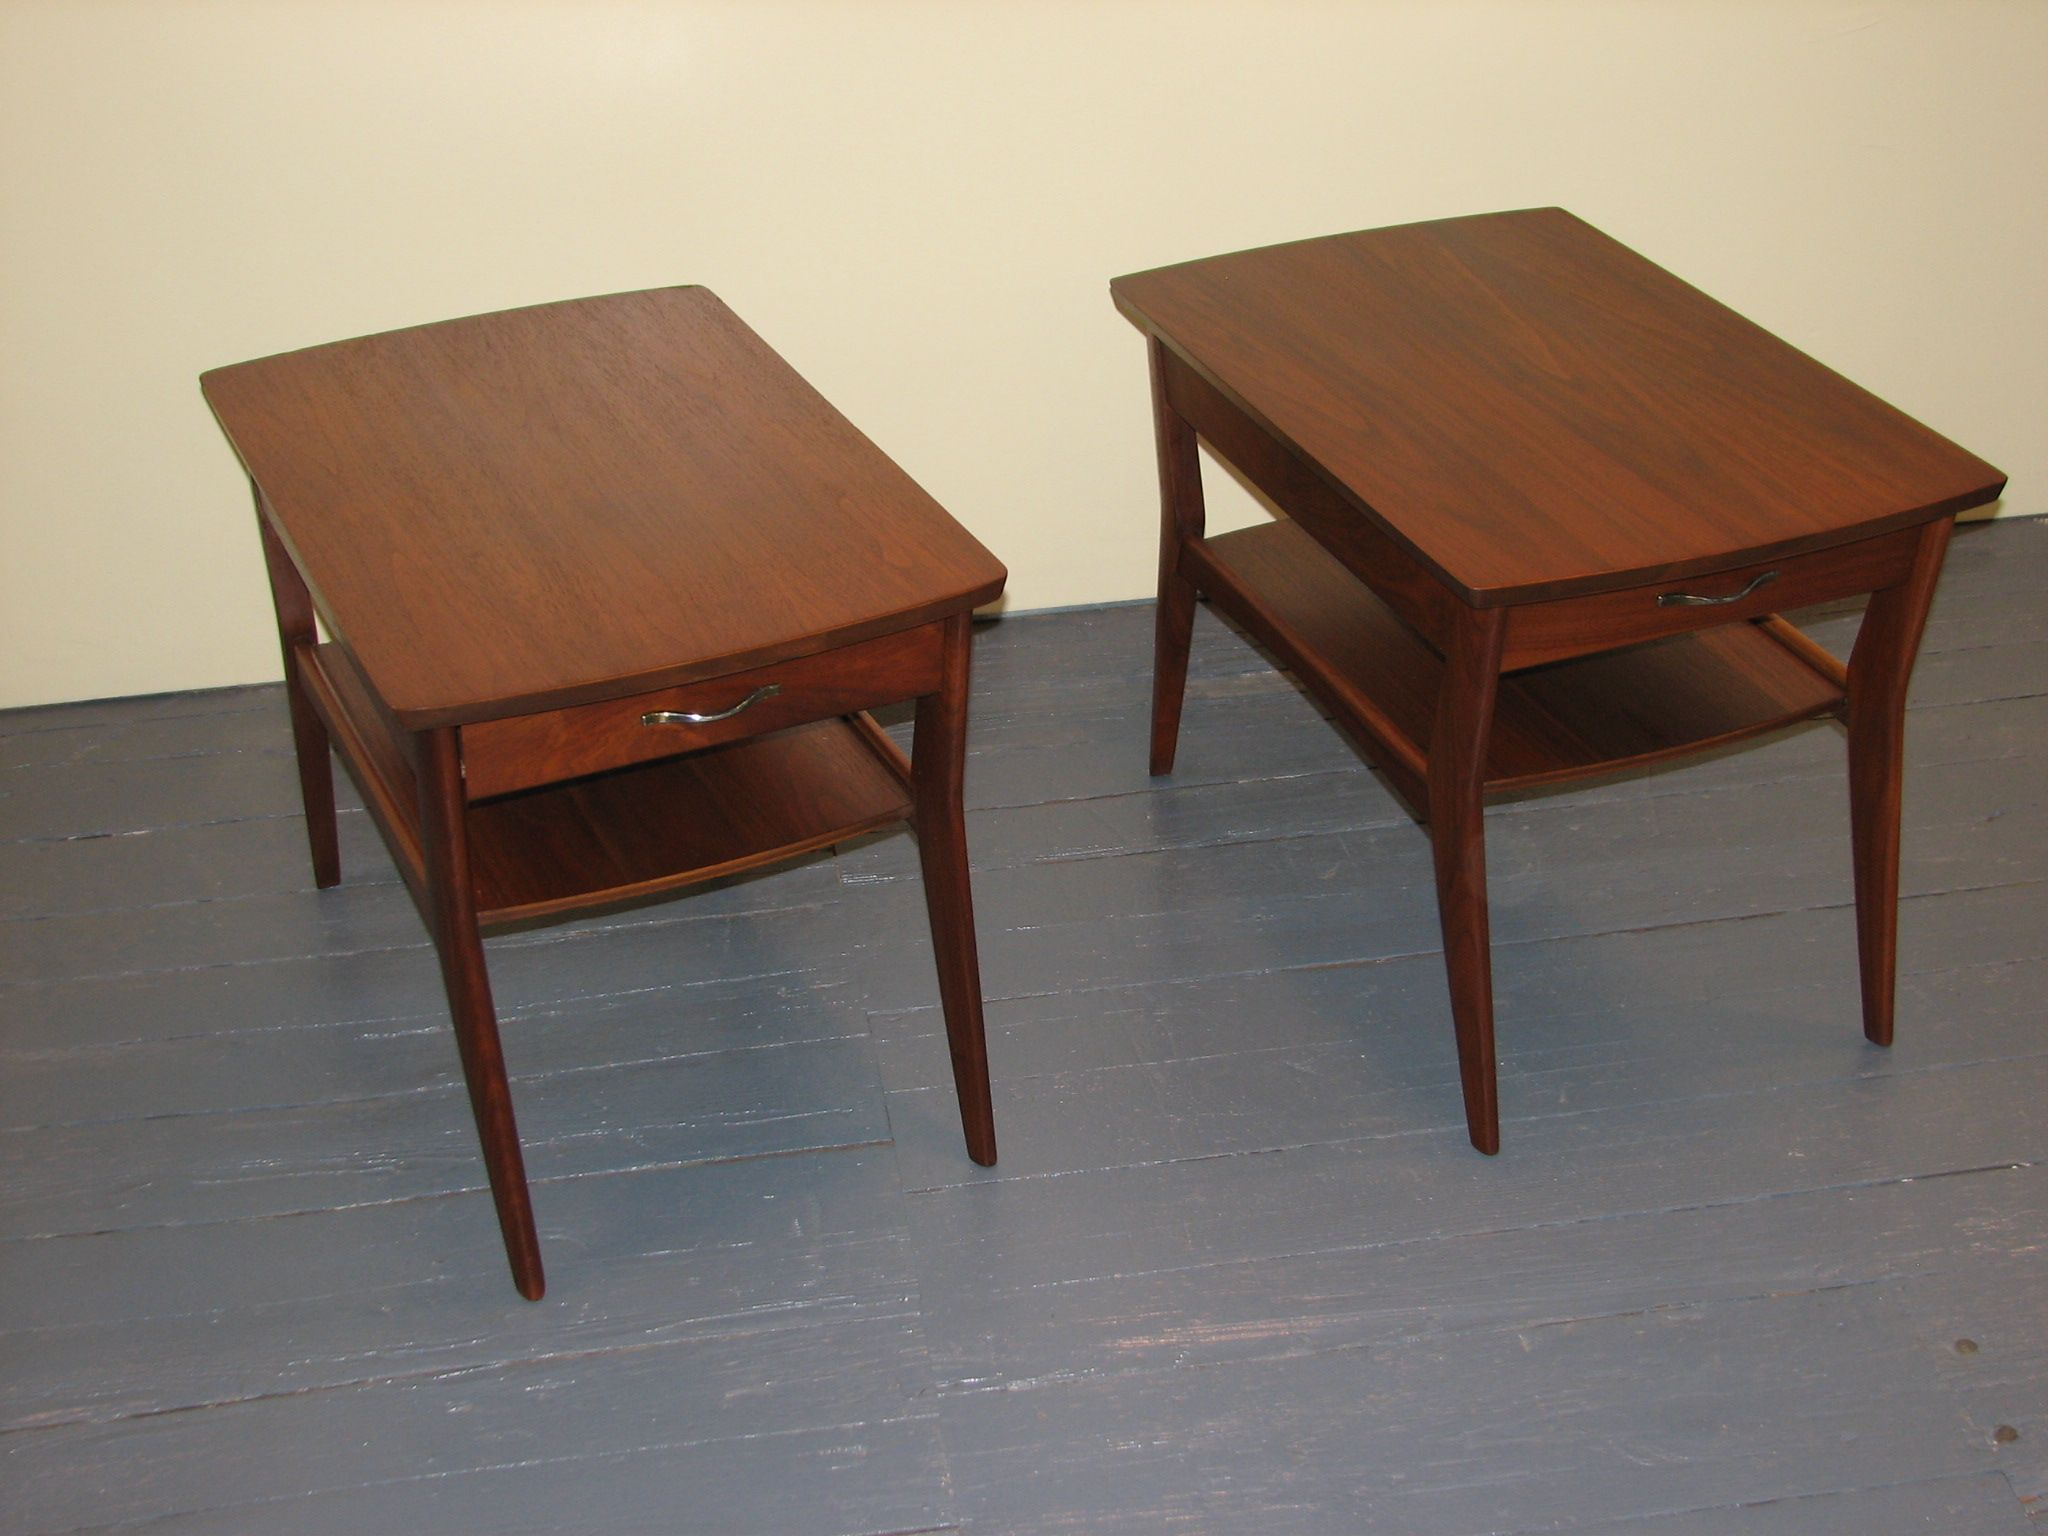 Mersman end tables to our 4 piece set